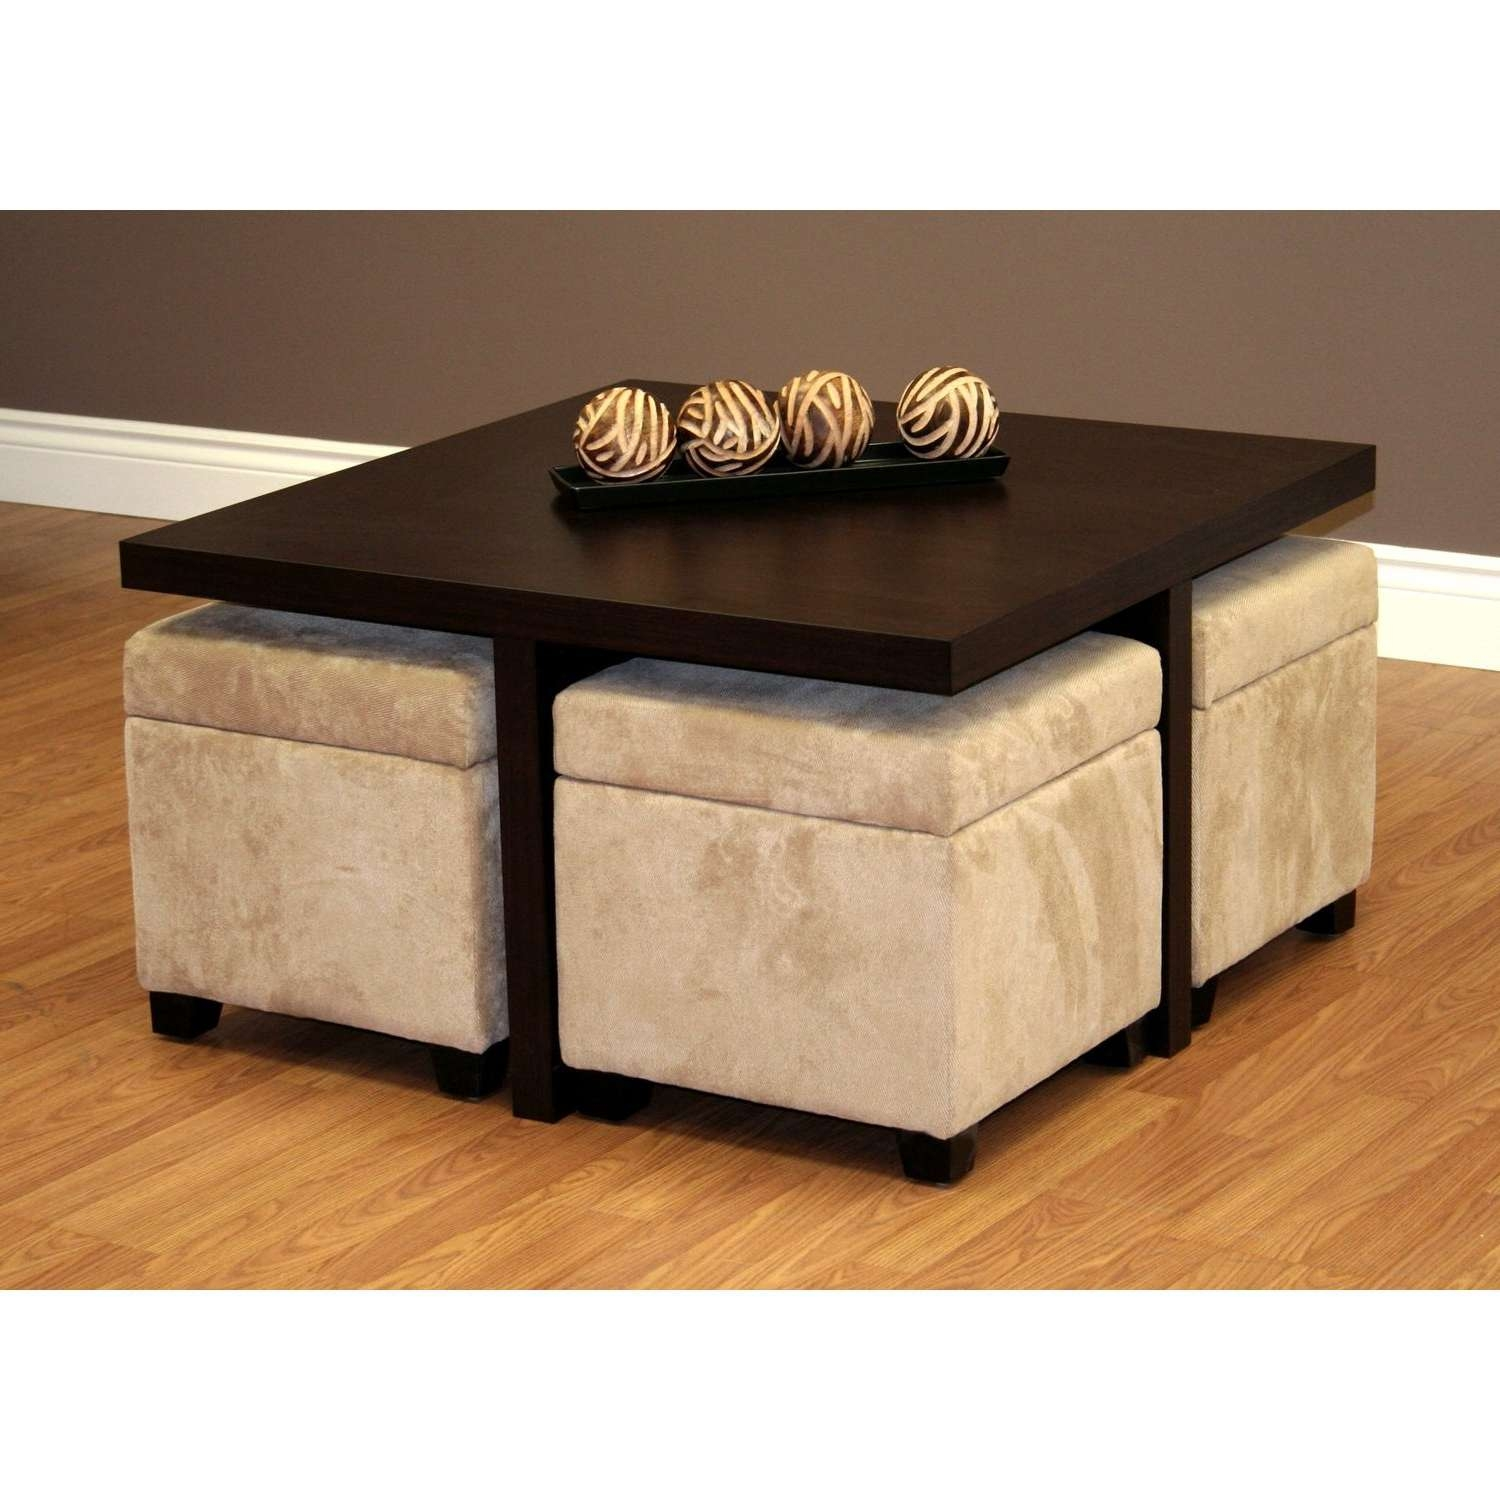 Most Recently Released Square Dark Wood Coffee Table Regarding Coffee Tables : Simple Coffee Tables Simple Black Coffee Table (View 10 of 20)